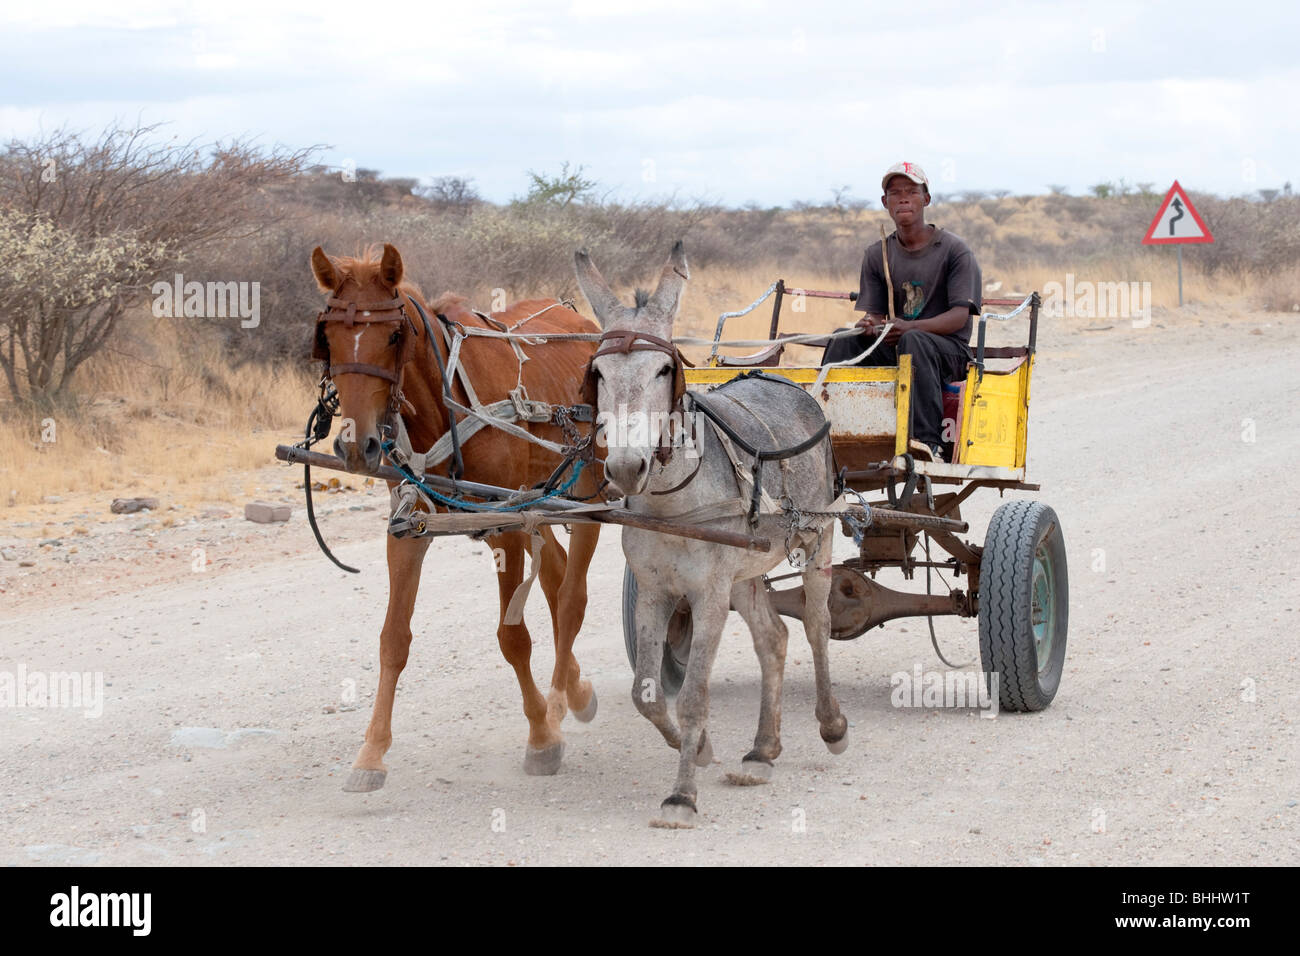 Man on a horse cart in Rehoboth Namibia - Stock Image